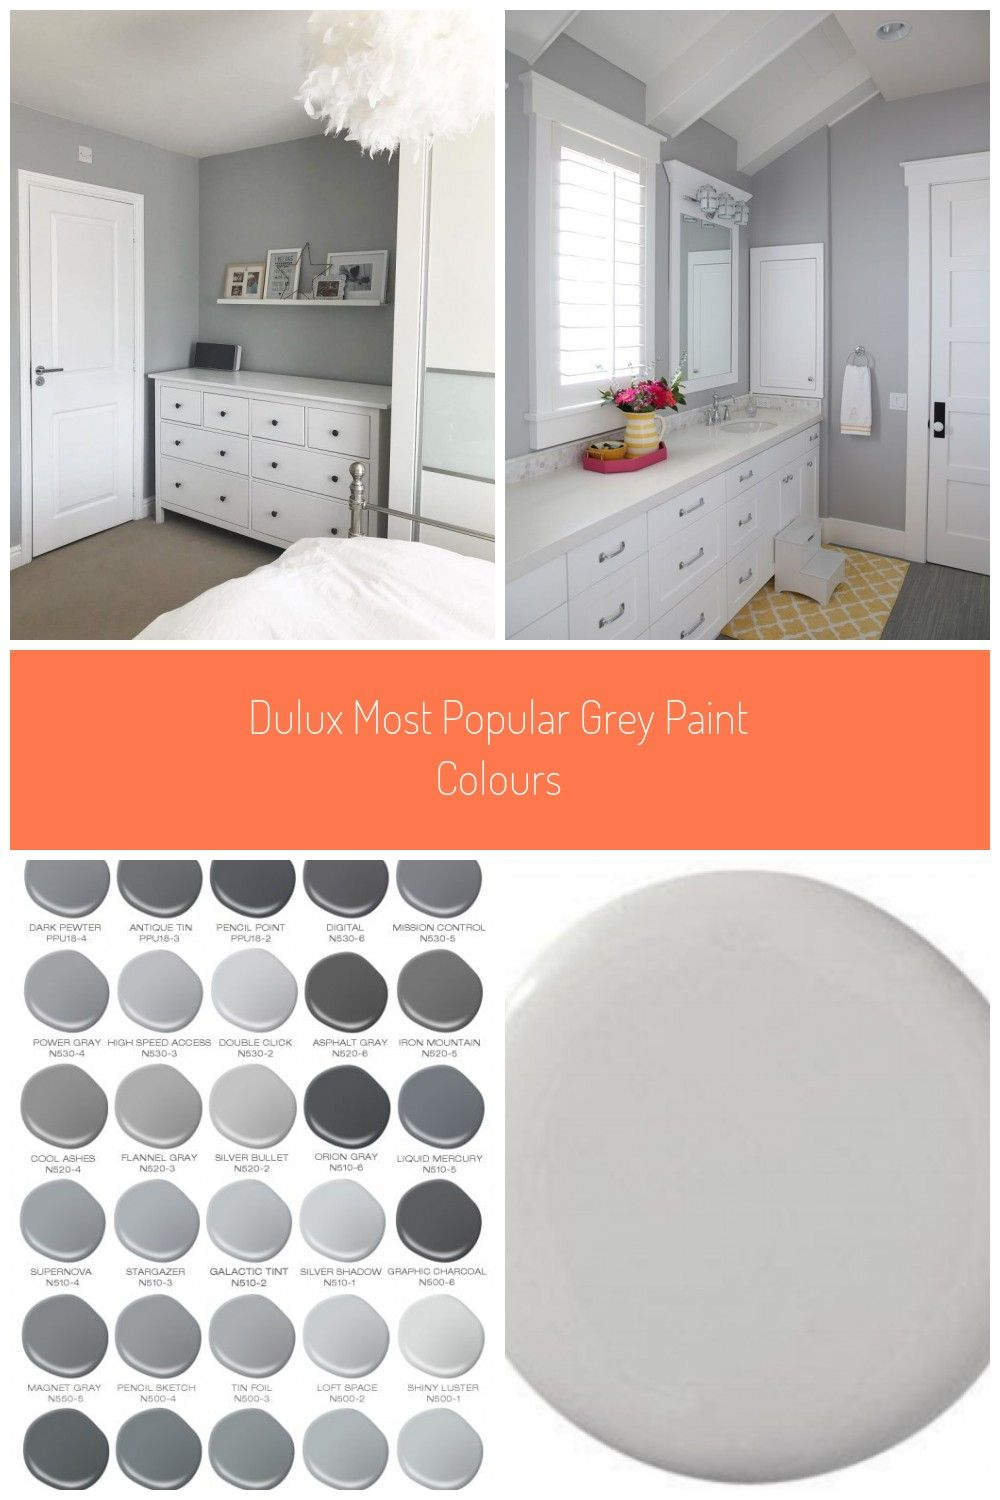 Dulux Most Popular Grey Paint Colours Bedroom Walls Painted In Dulux Goose Down Grey Paint Dulux Mos Gray Painted Walls Popular Grey Paint Colors Grey Paint